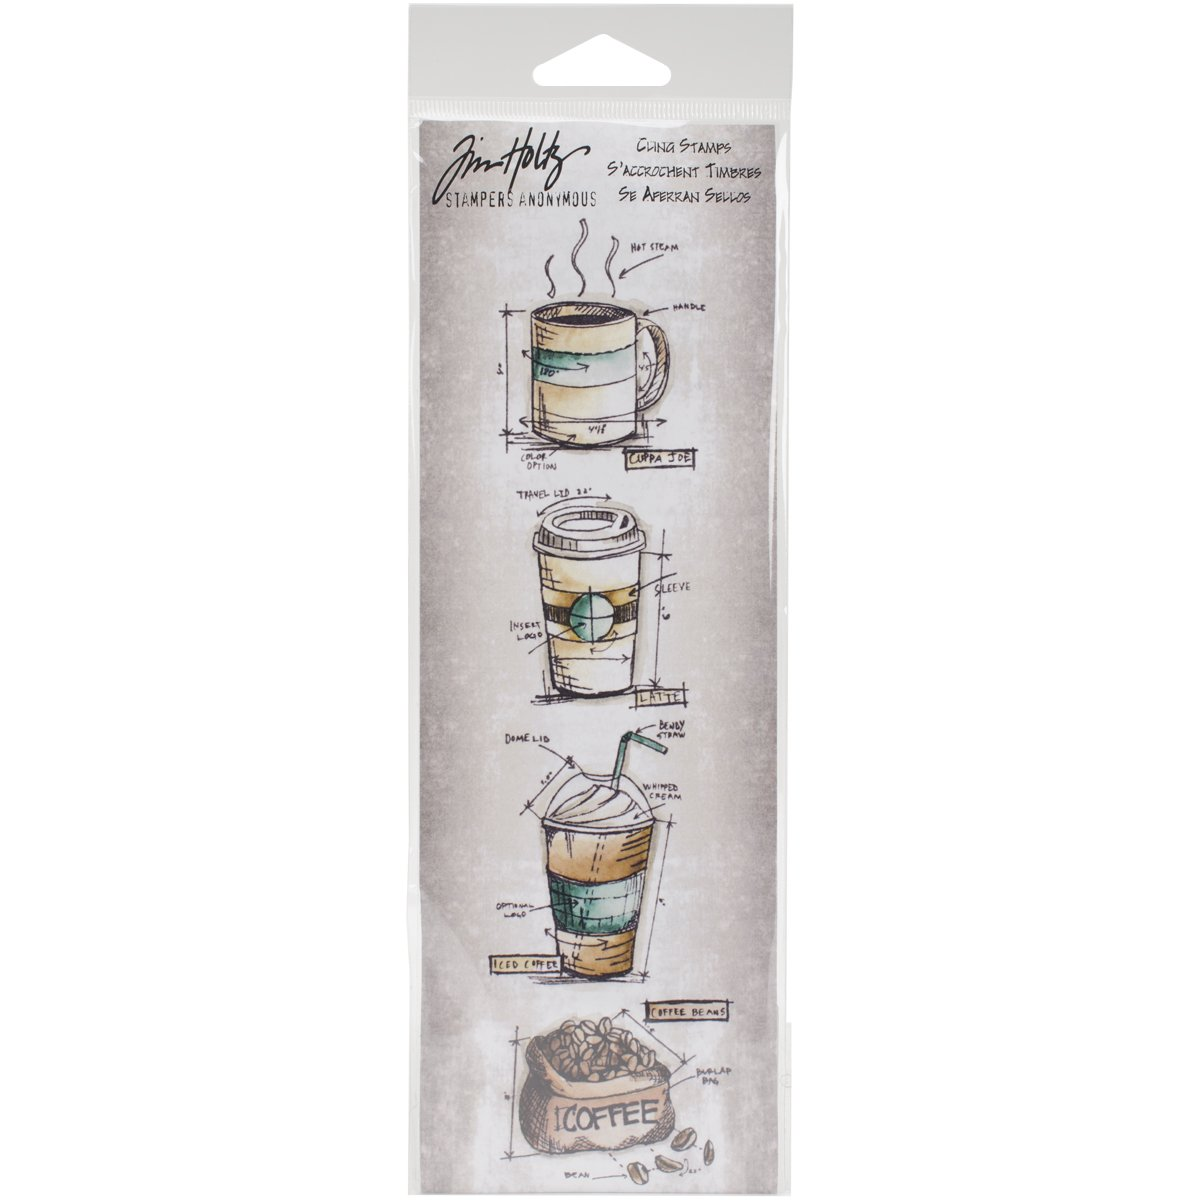 Stampers Anonymous Agw Fresh Brewed Mini Blueprints Strip, Grey by Amazon